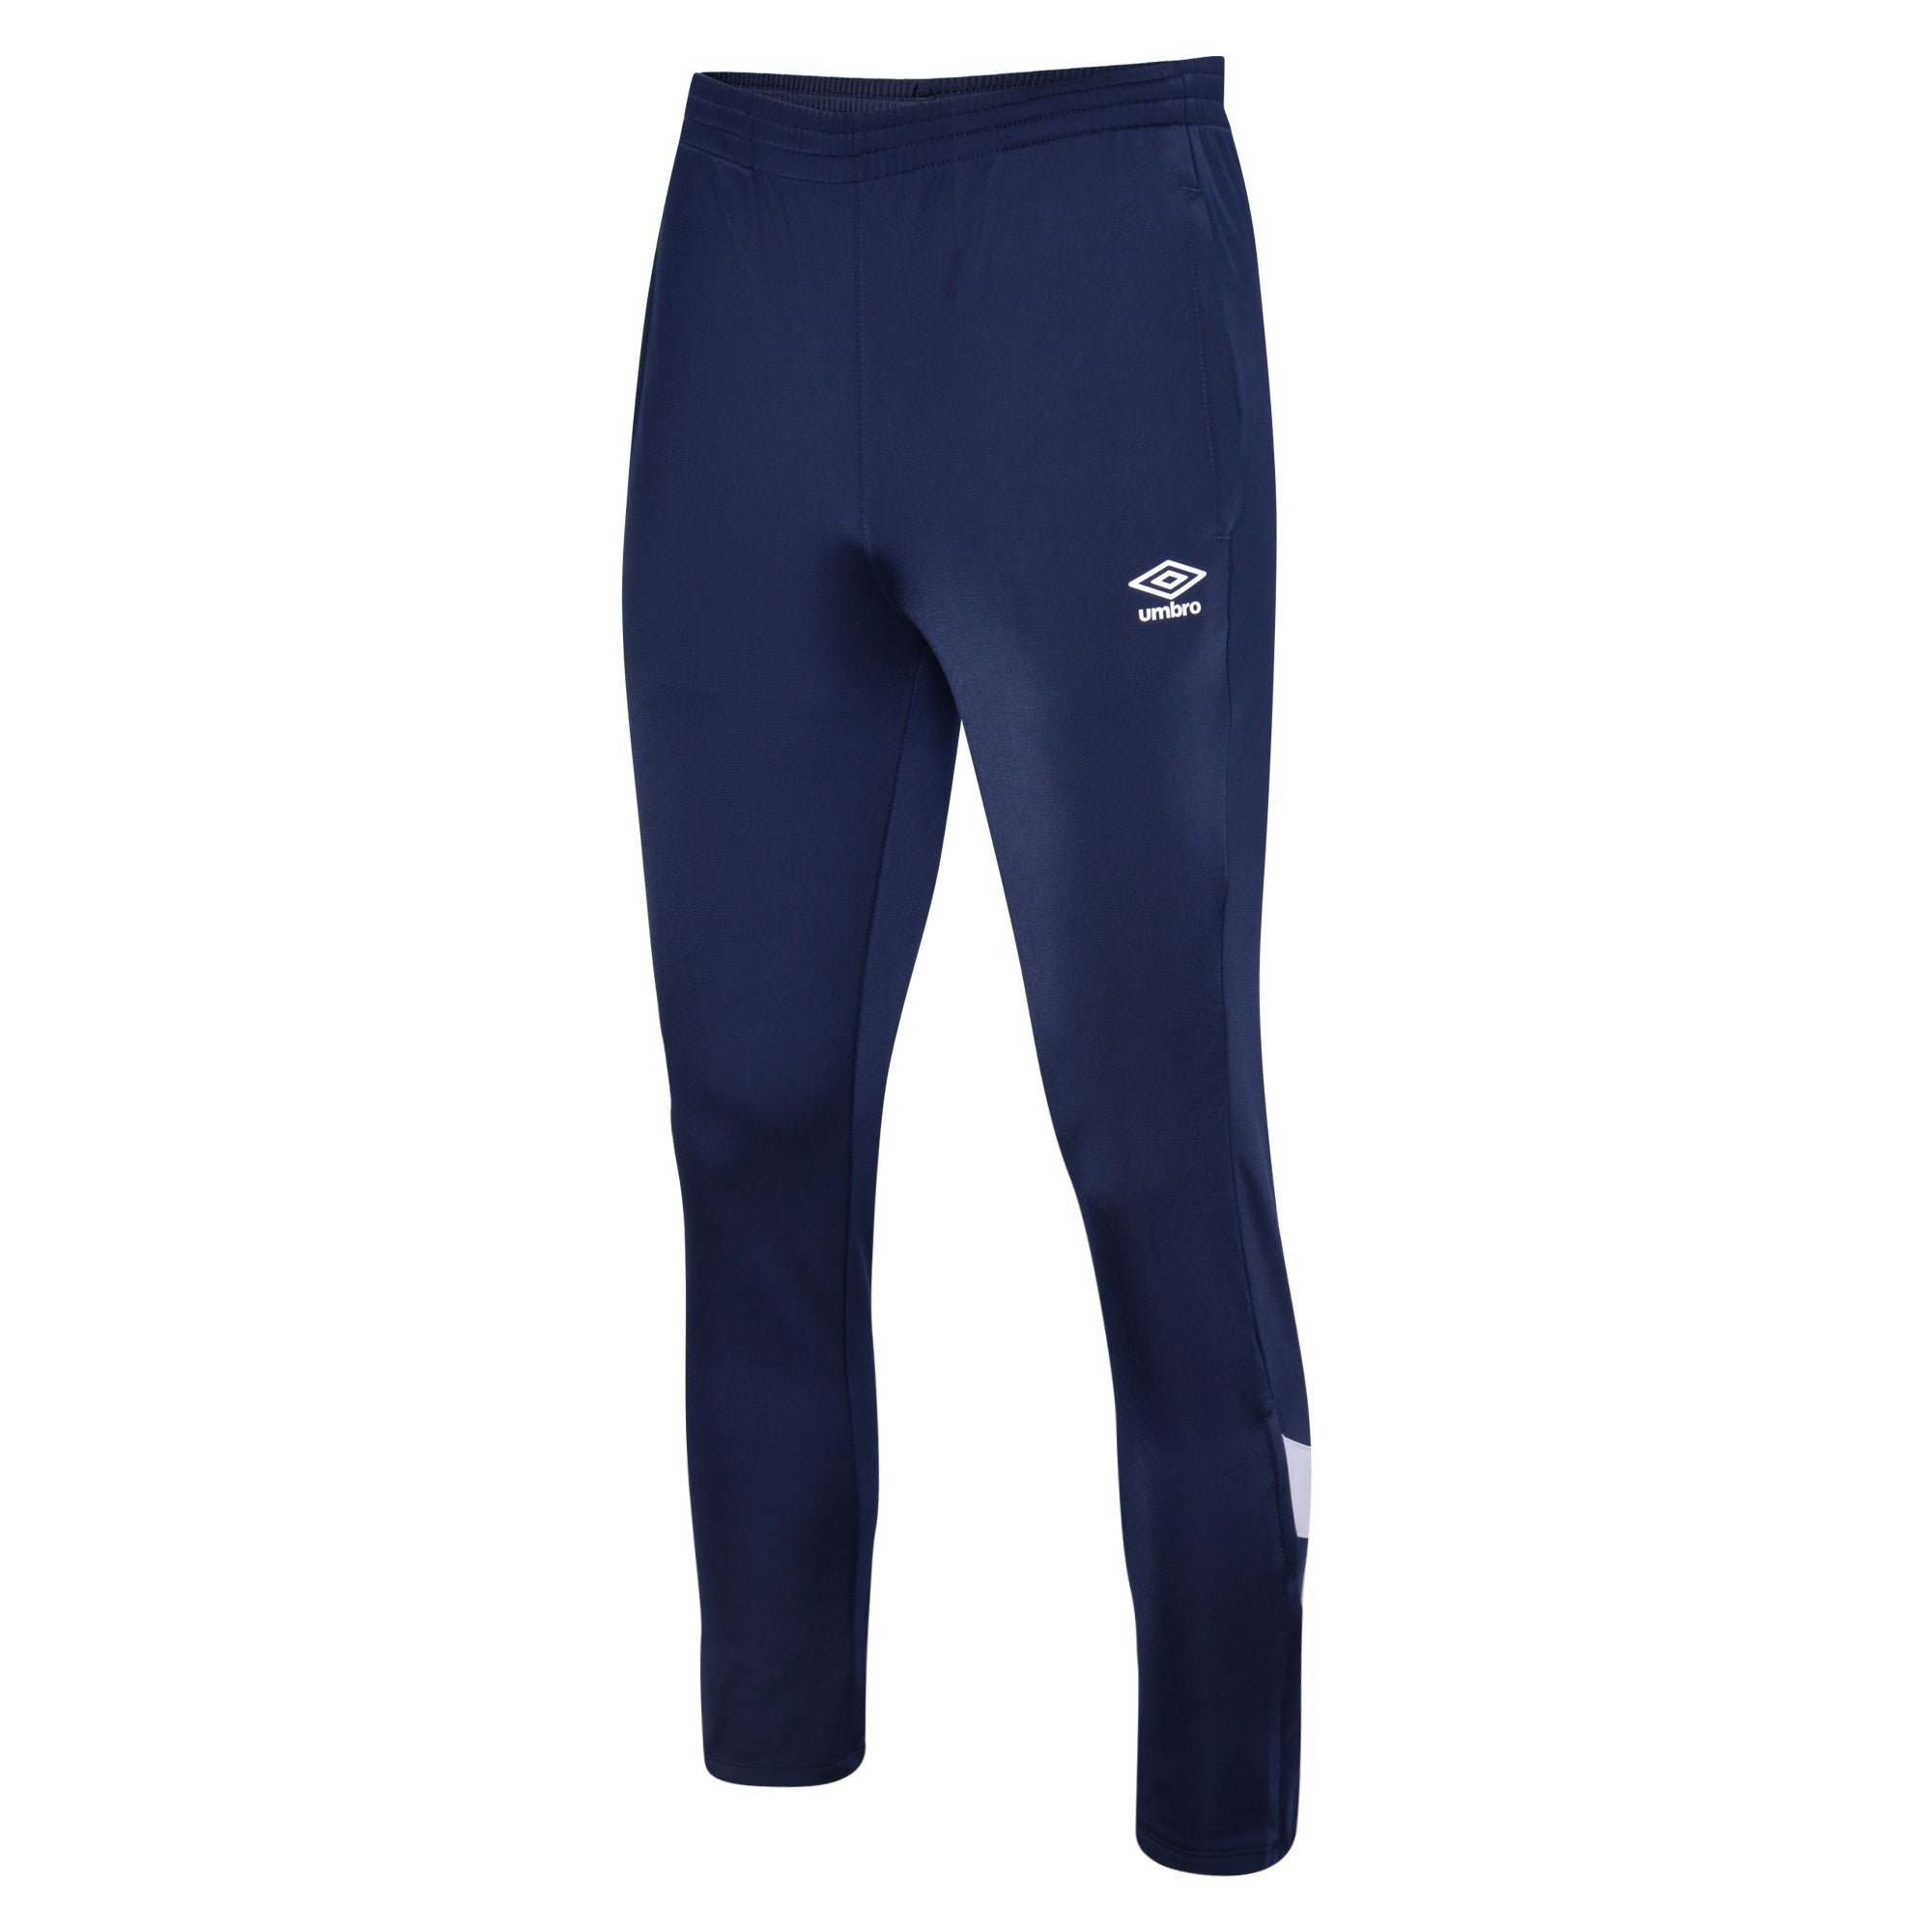 Umbro Training Knitted Pant - Navy